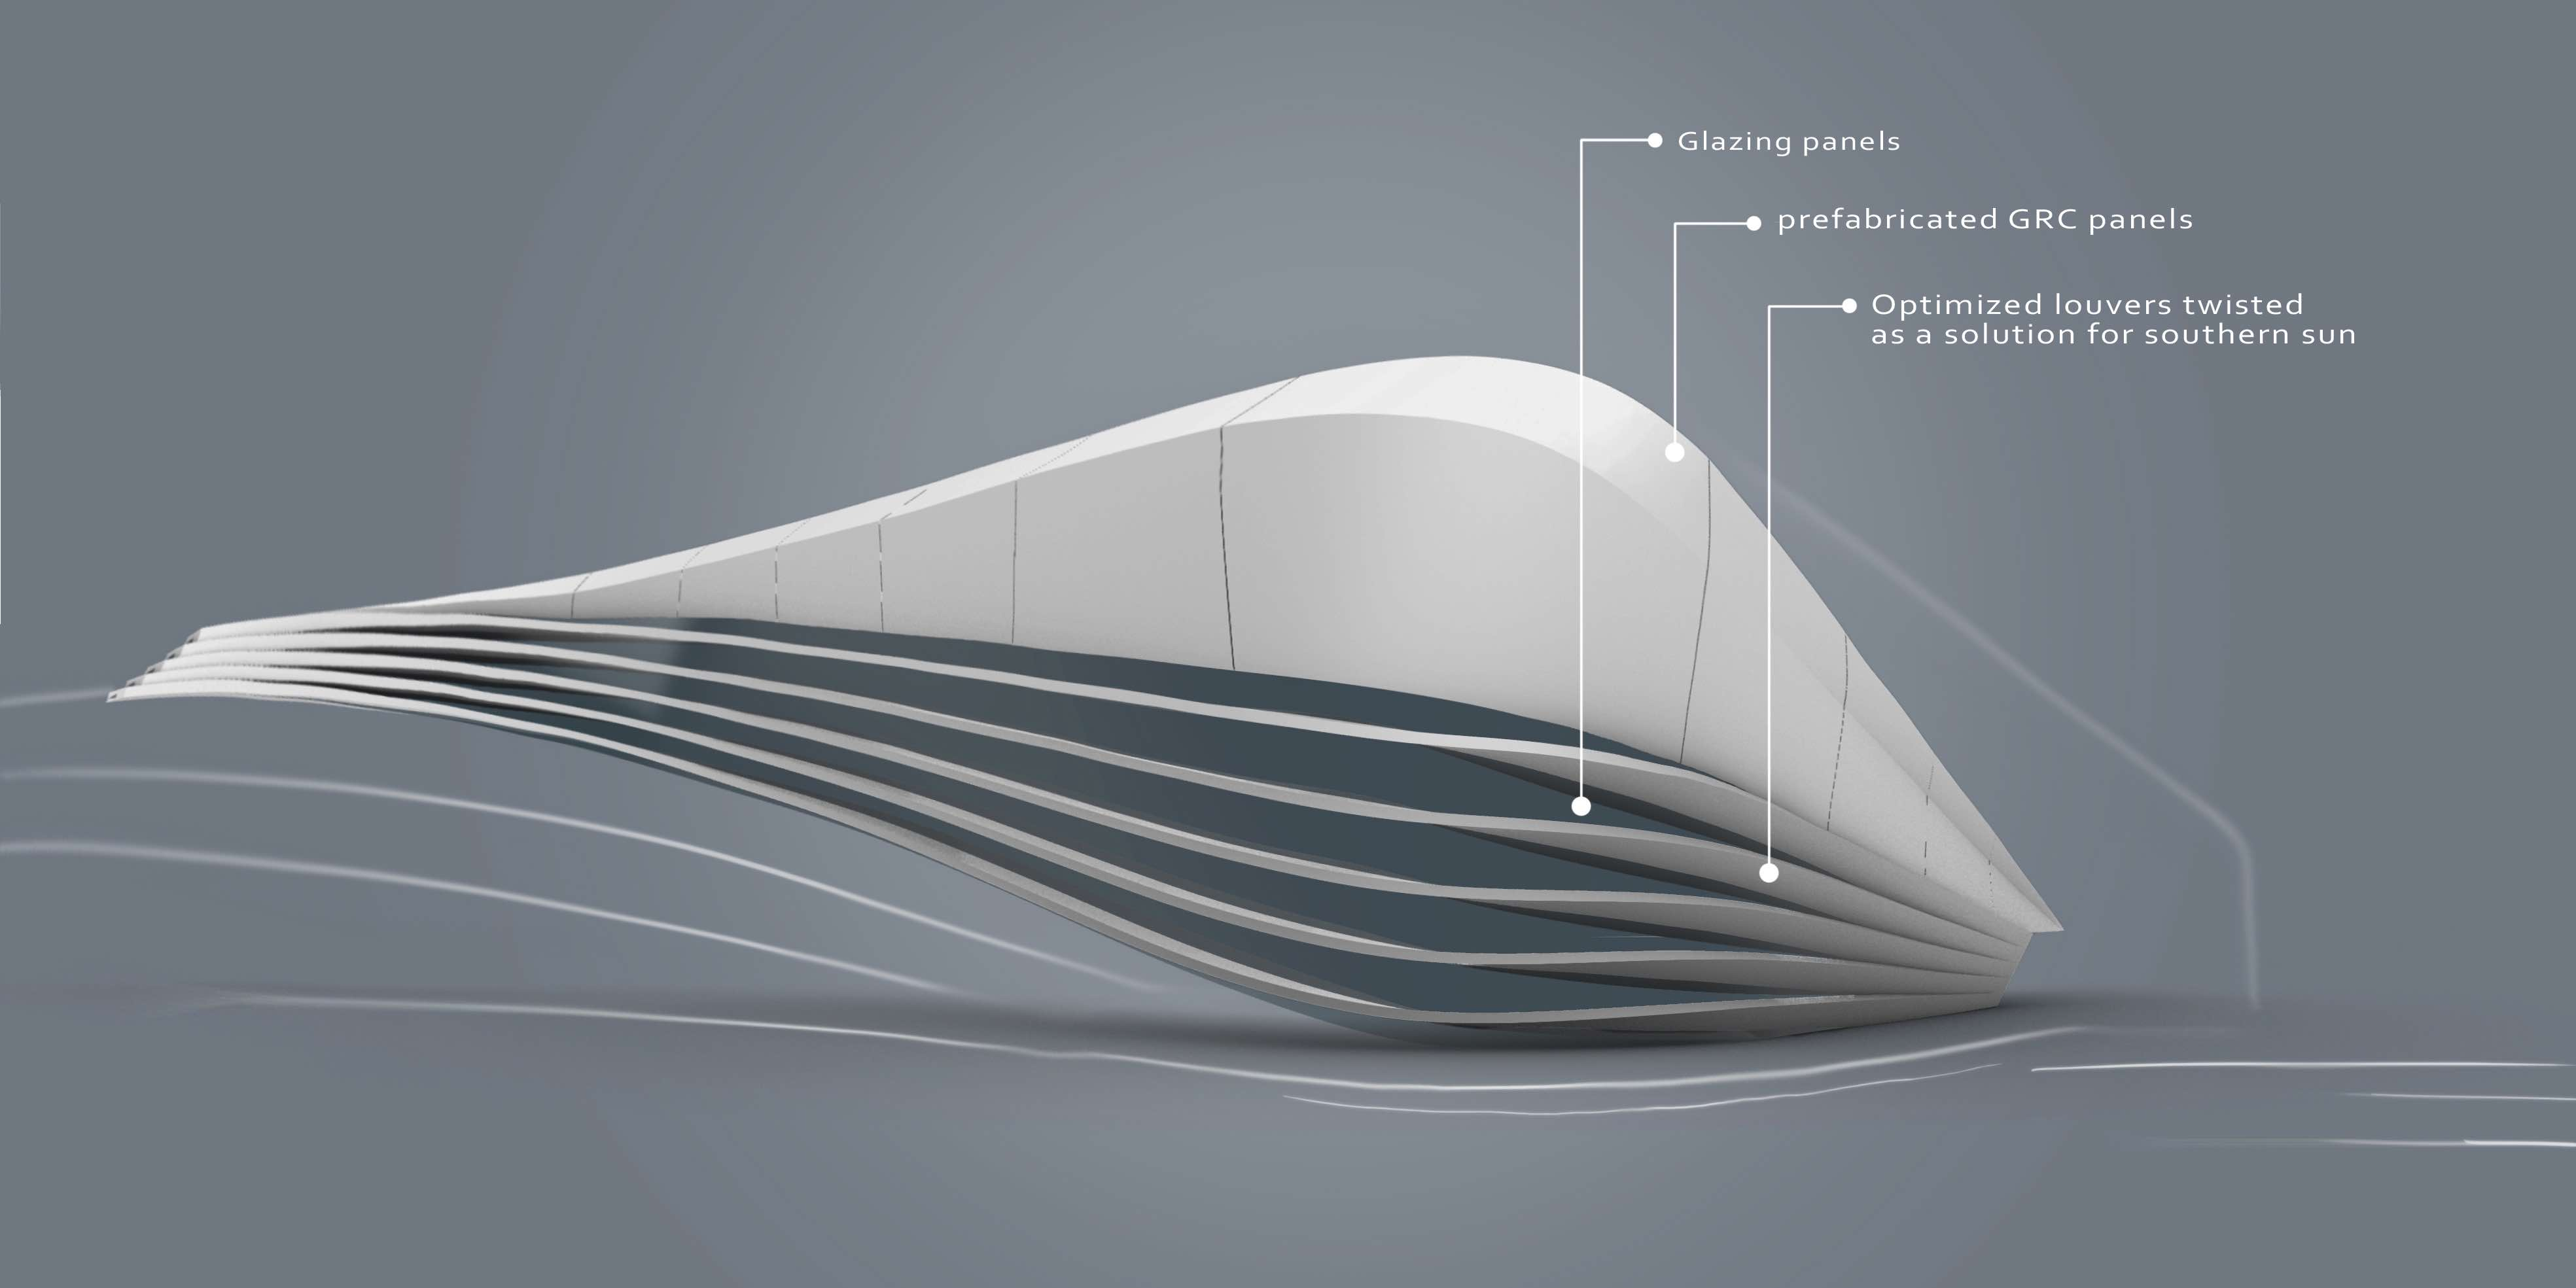 Salt formation center designed by Ahmed Darwish in Alexandria Egypt